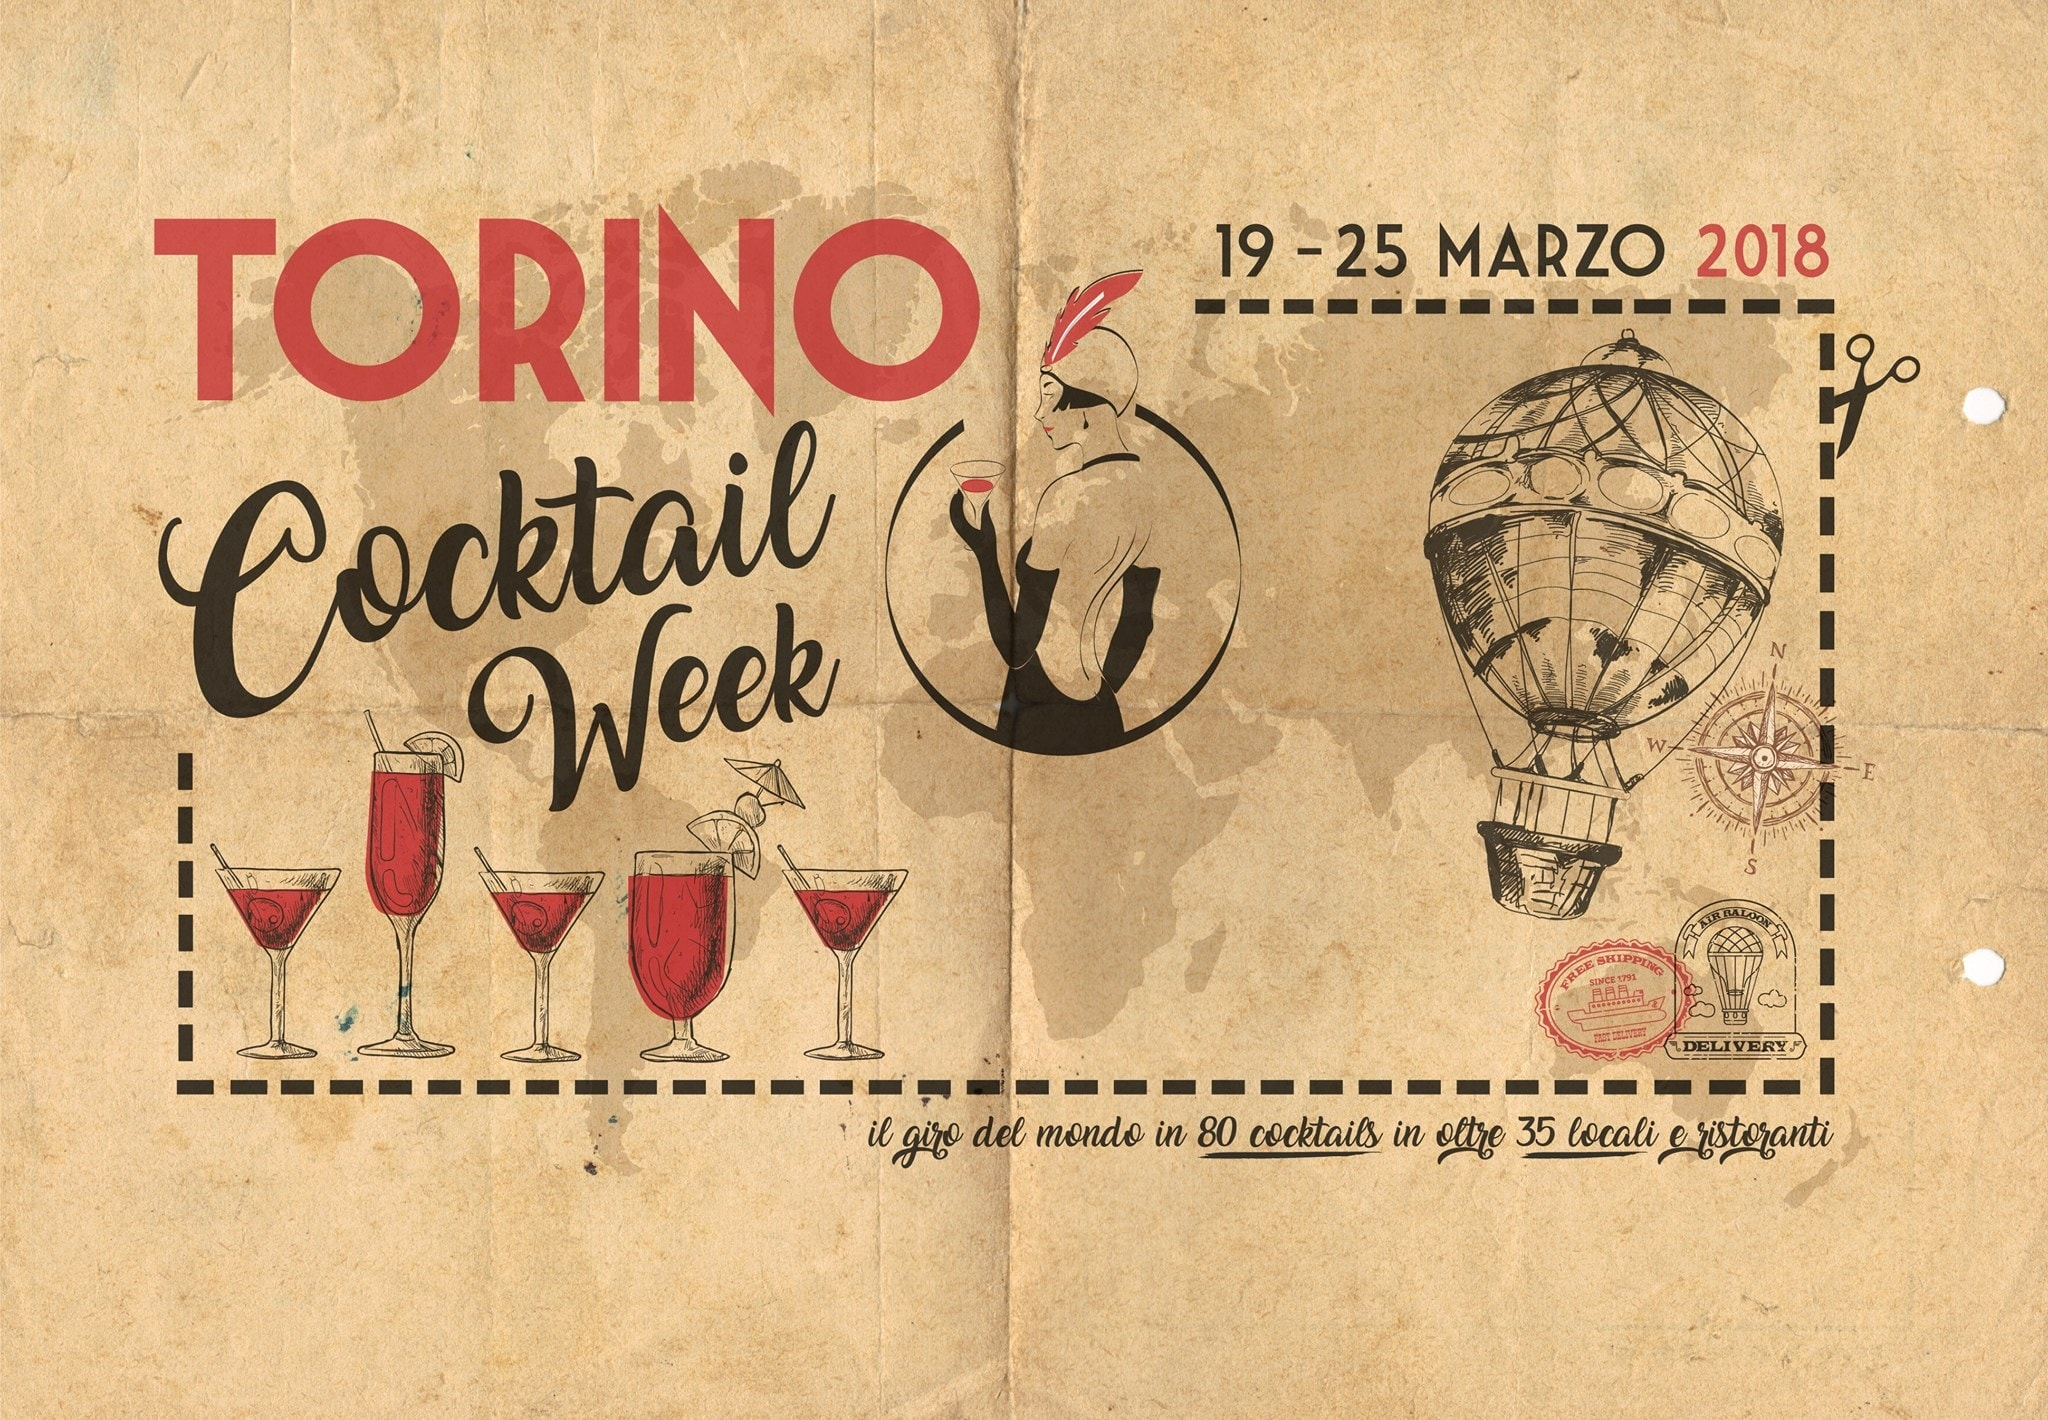 Torino Cocktail Week 2018